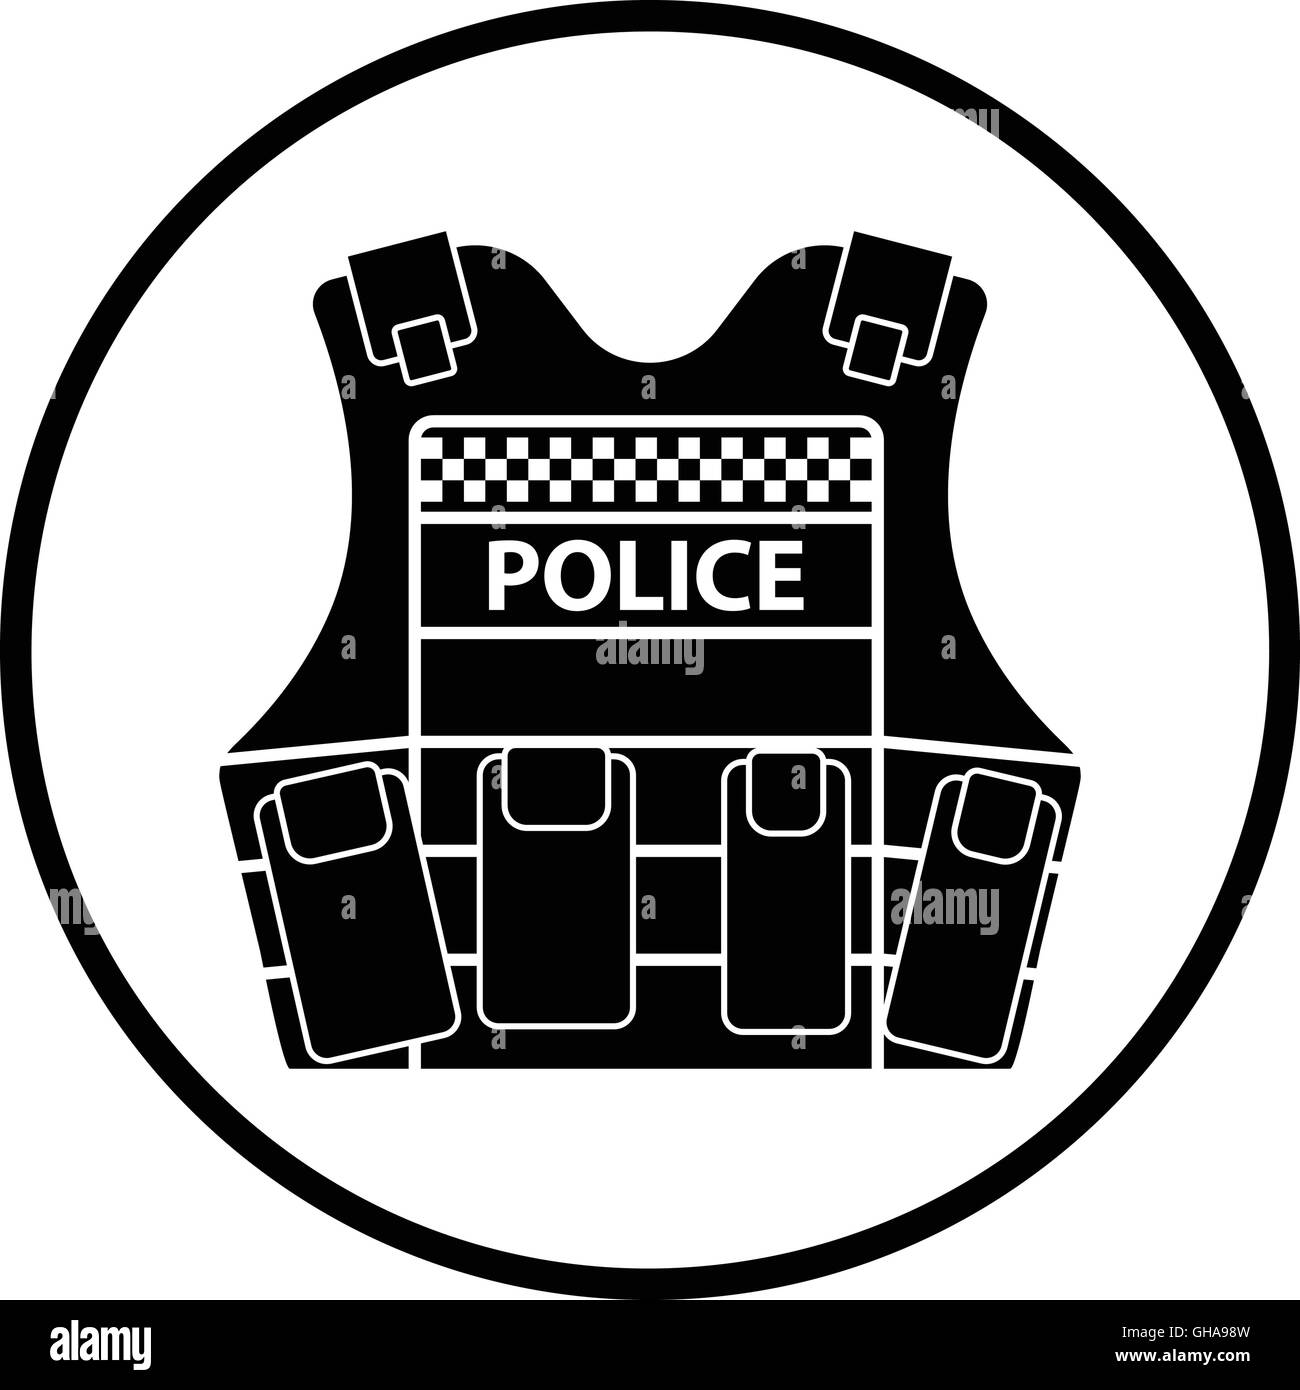 Police vest icon. Thin circle design. Vector illustration. - Stock Image